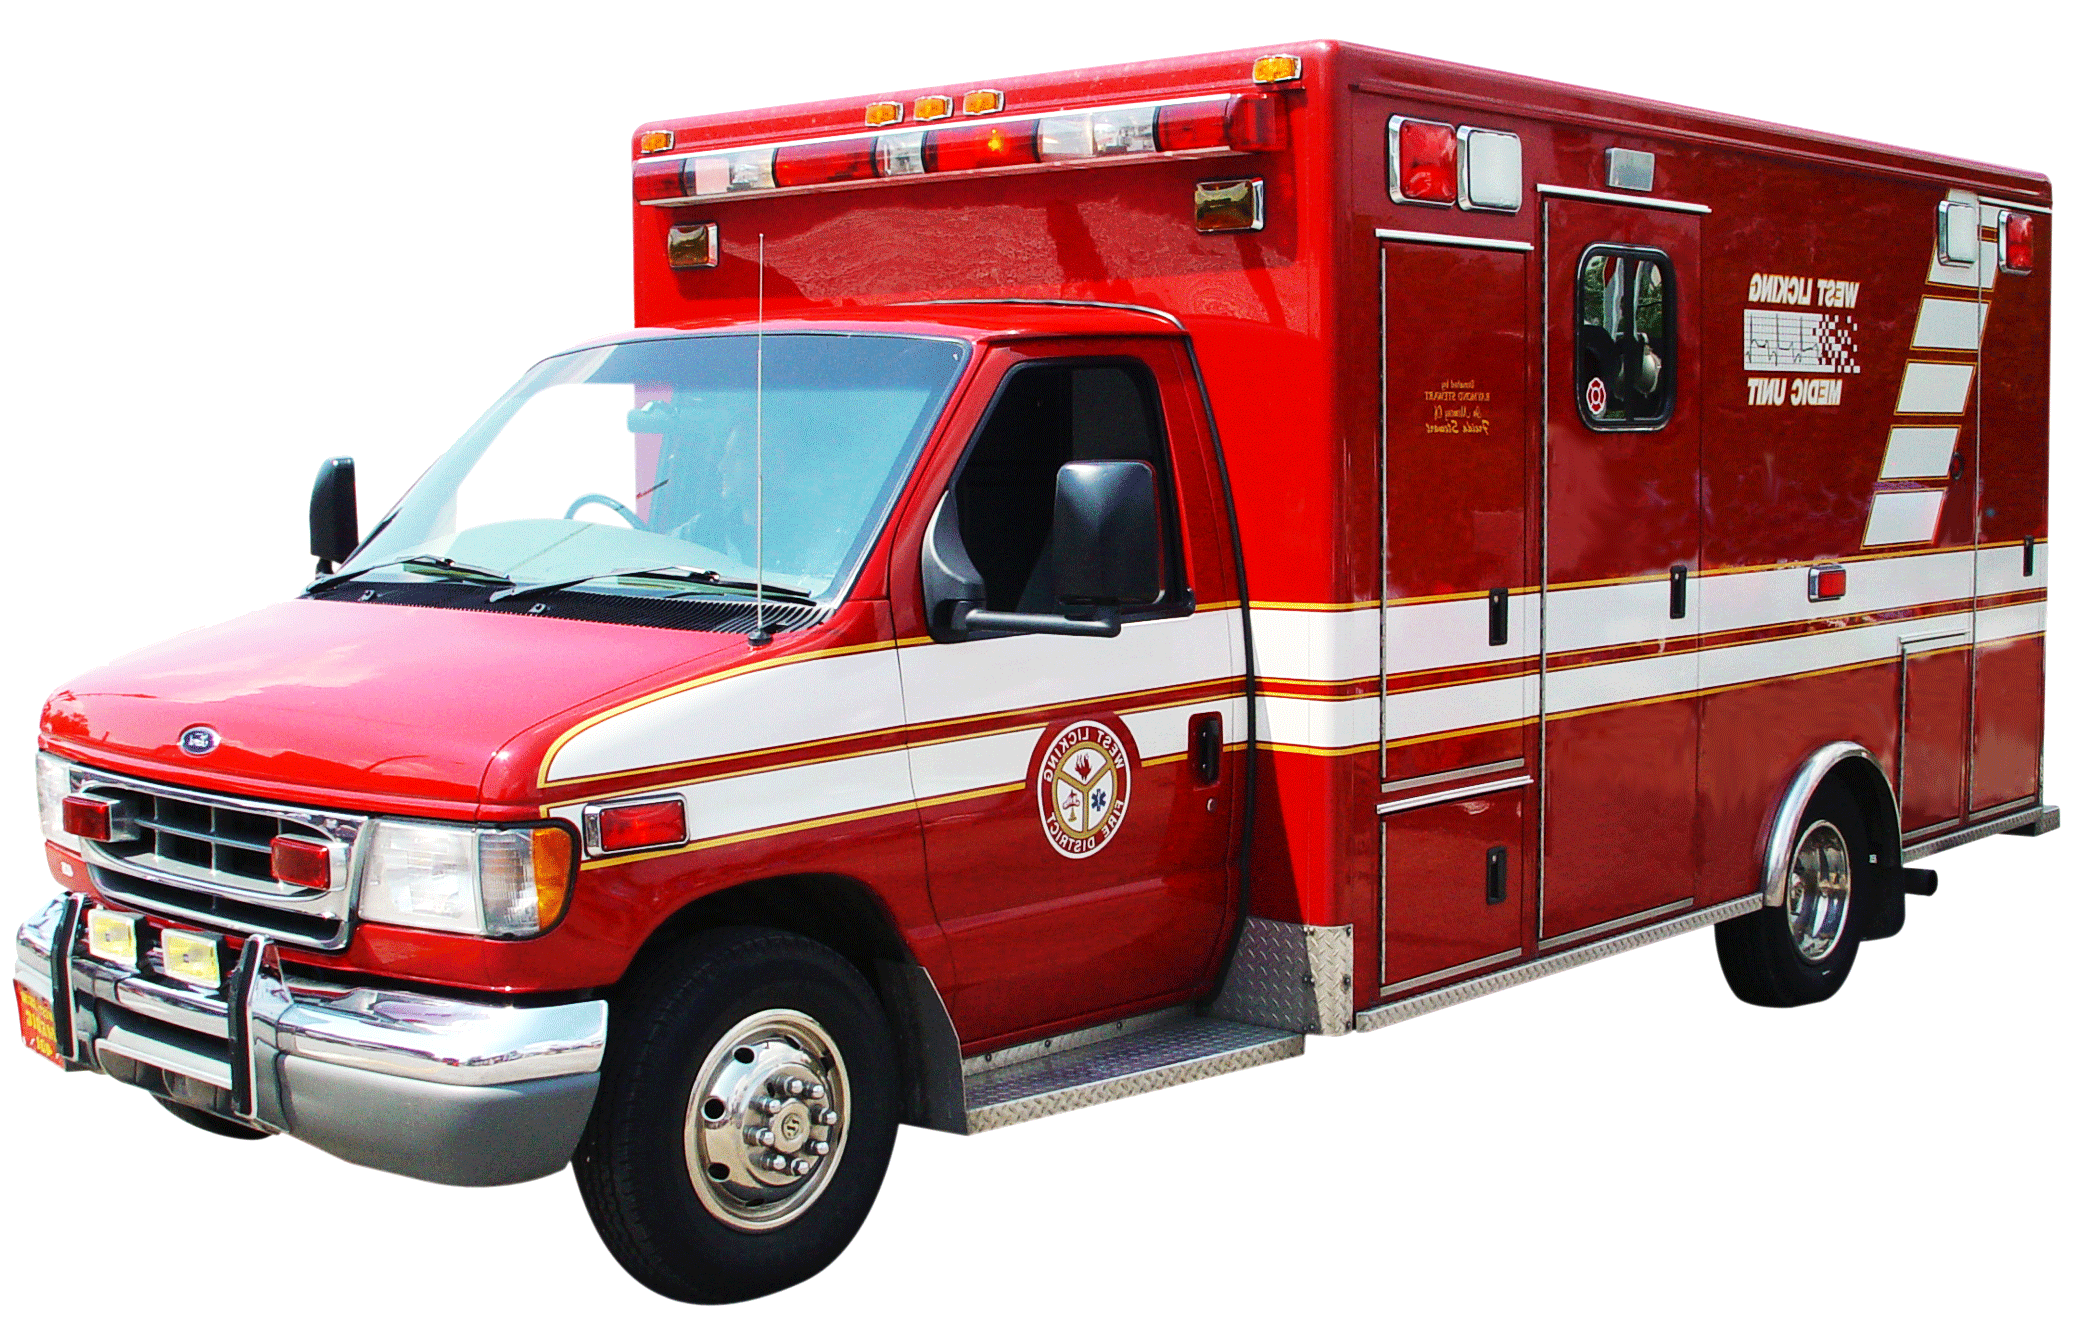 Emergency clipart clear background. Ambulance png image purepng